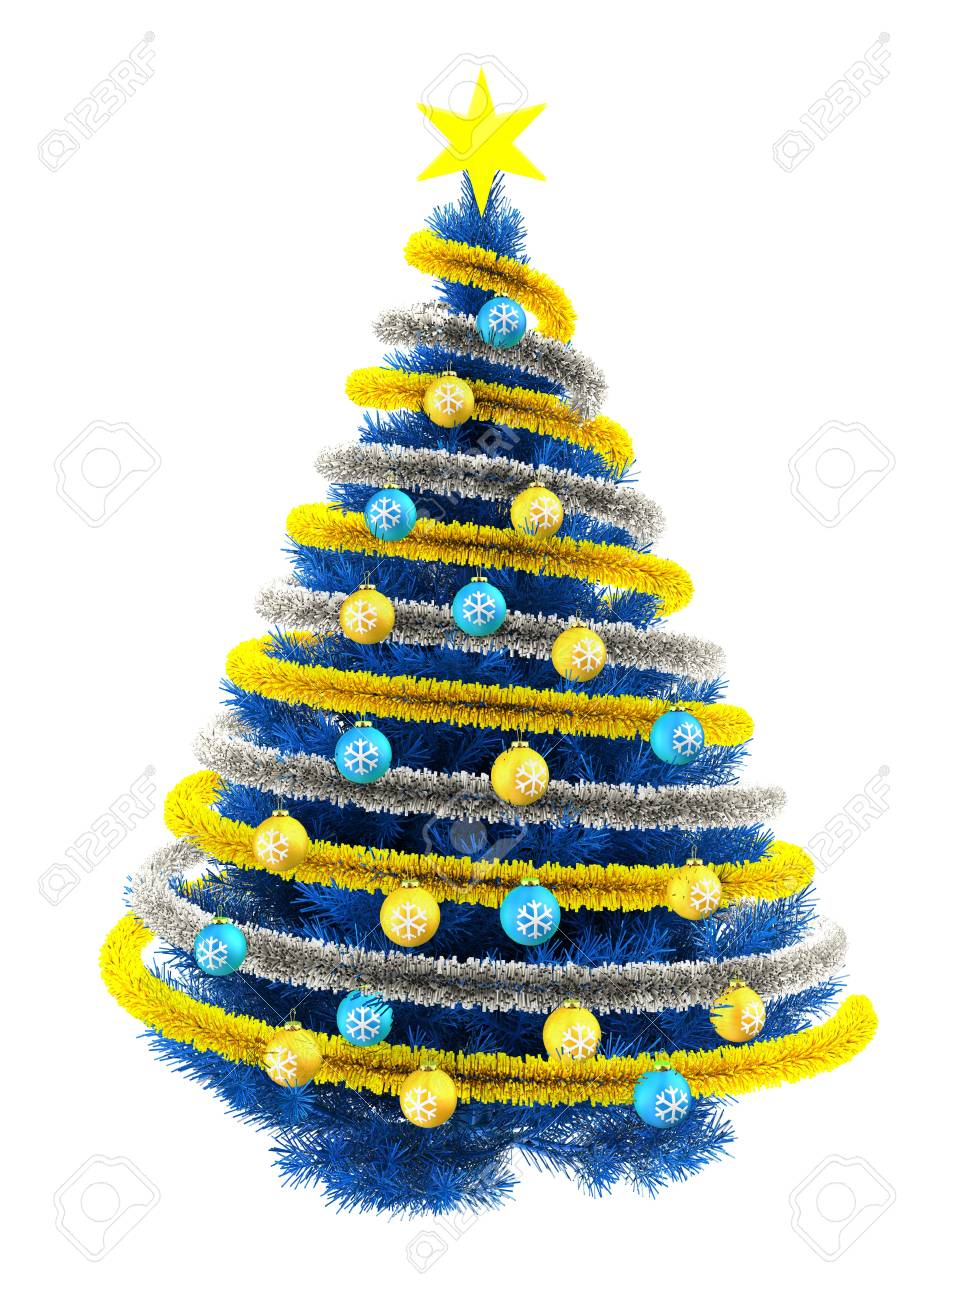 3d Illustration Of Blue Christmas Tree Over White With Yellow Stock Photo Picture And Royalty Free Image Image 87855895